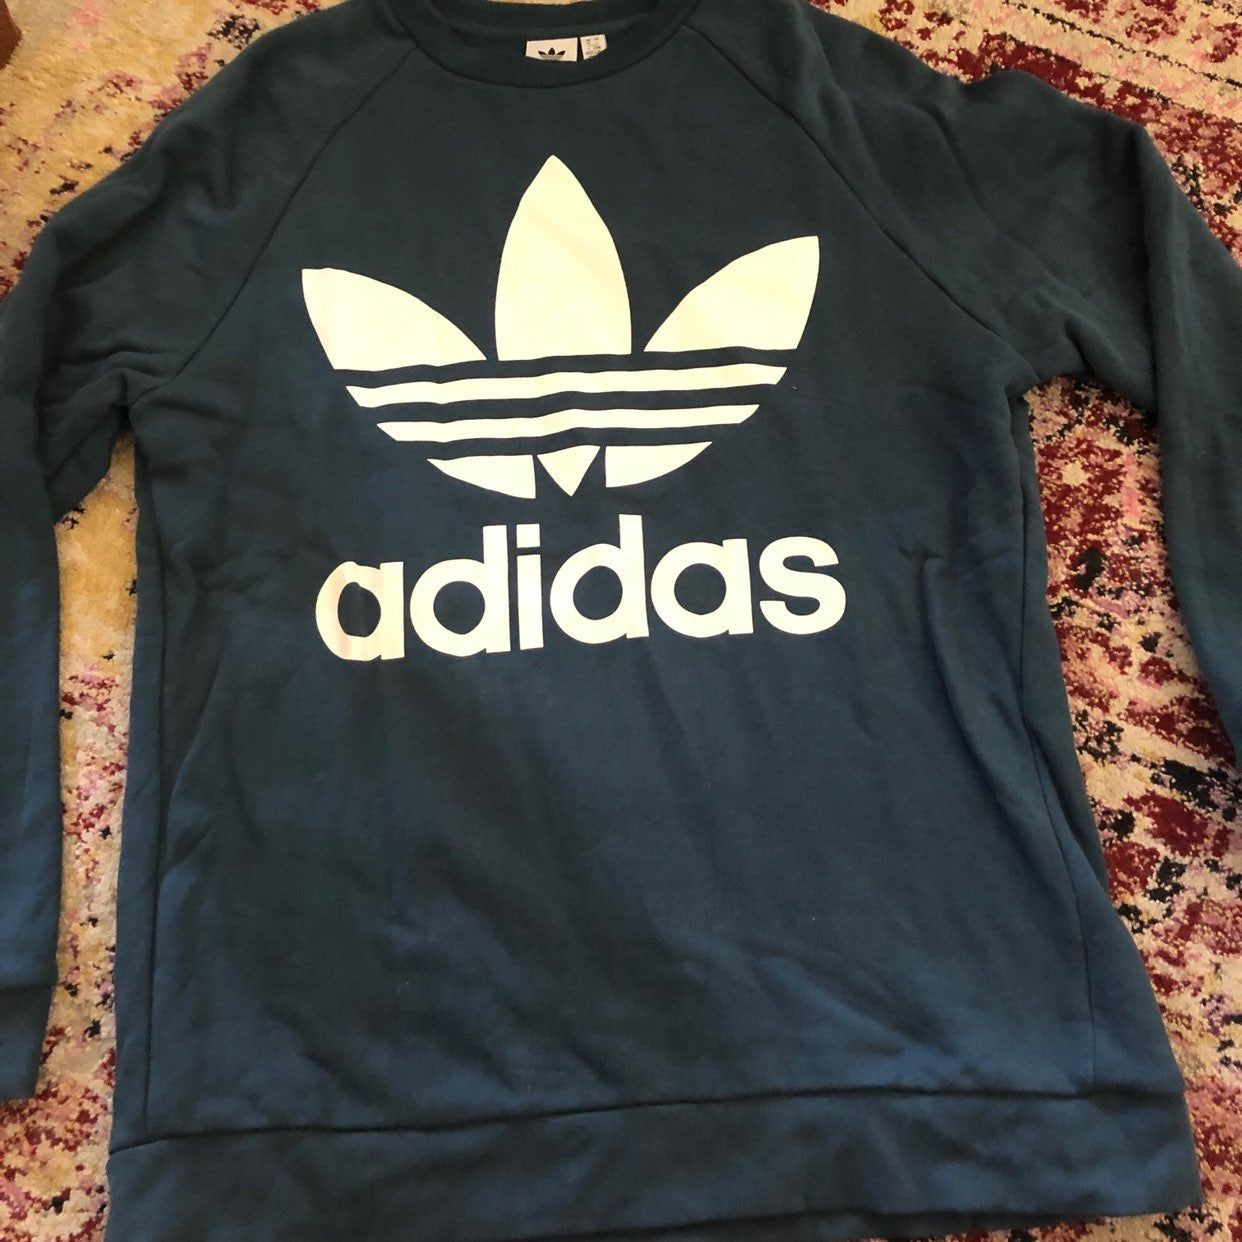 Super Cute Blue Adidas Sweatshirt Women S Size Large Worn Once Or Twice Great Condition Adidas Sweatshirt Adidas Blue Adidas [ 1242 x 1242 Pixel ]